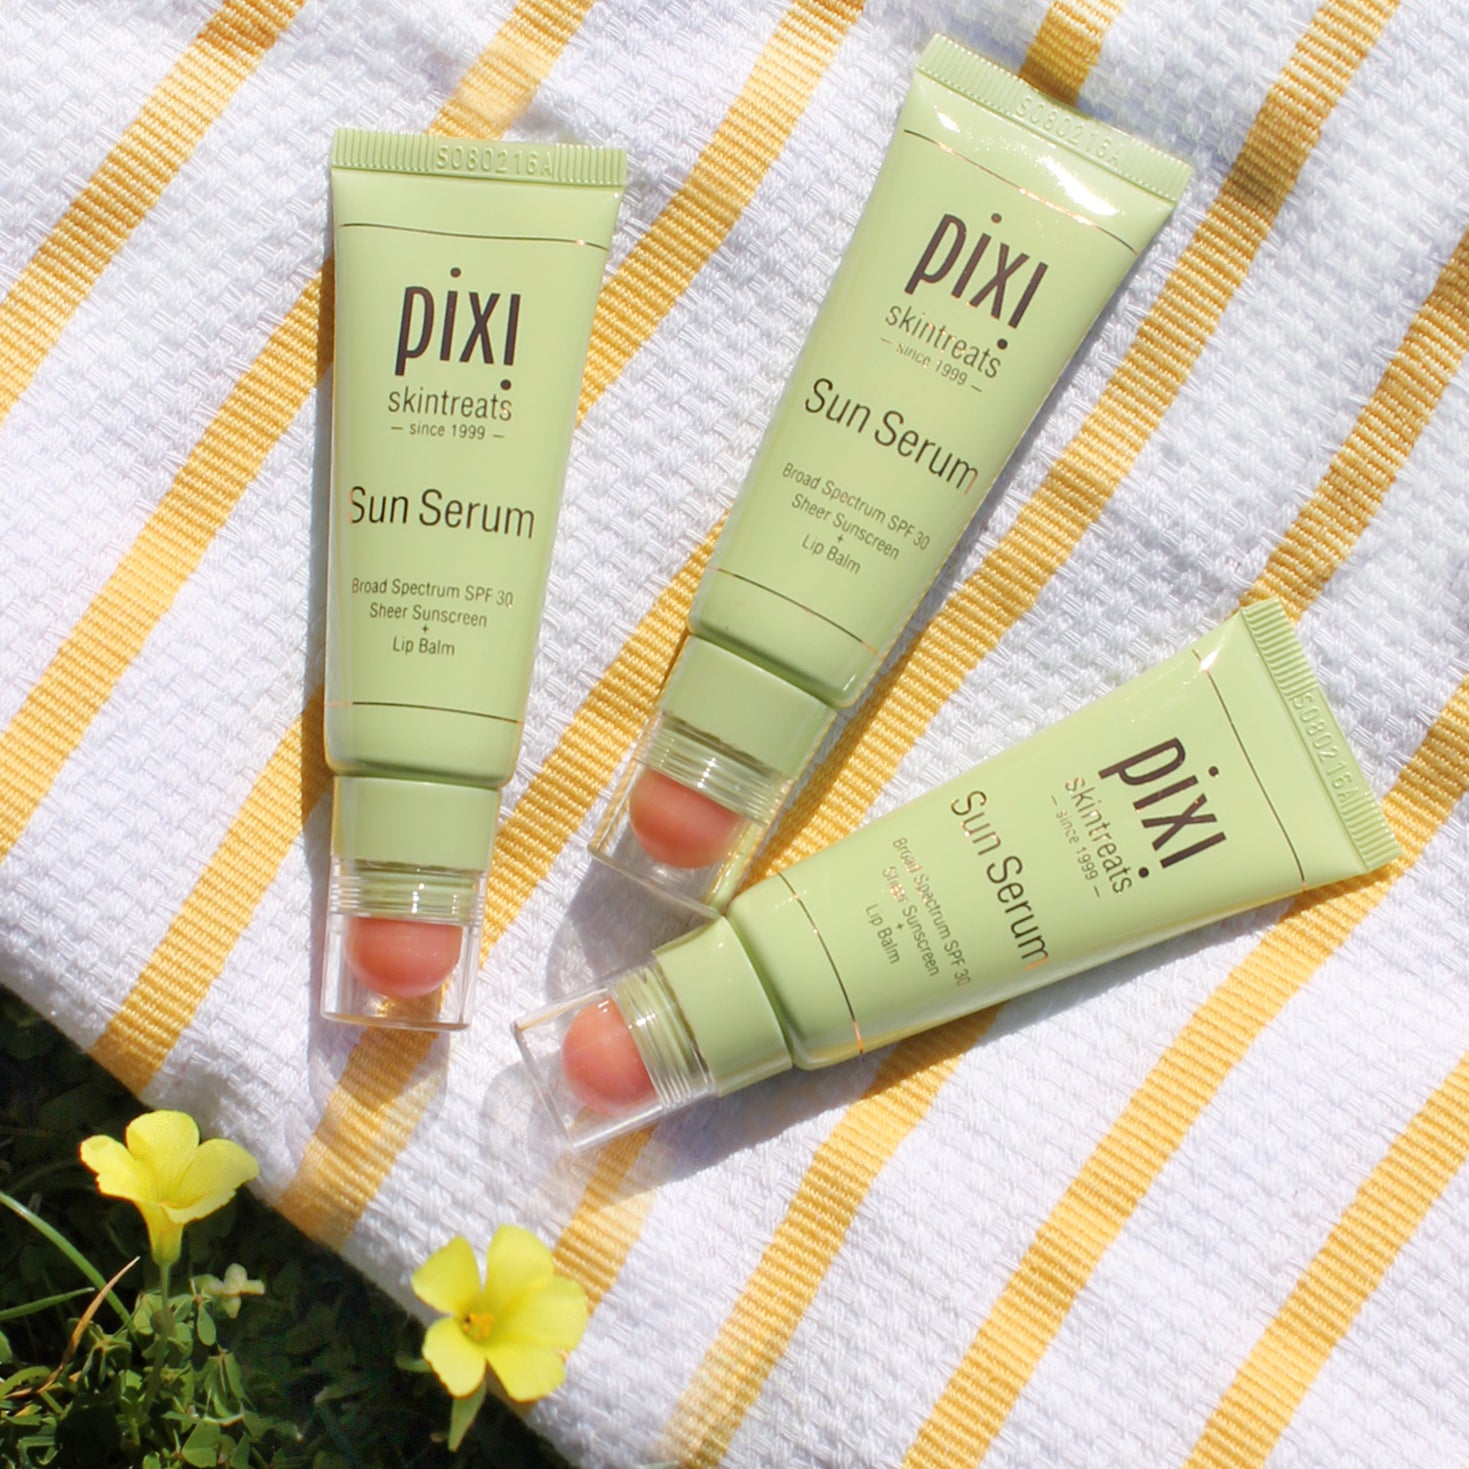 Sun Serum Sun Mist Pixi Beauty